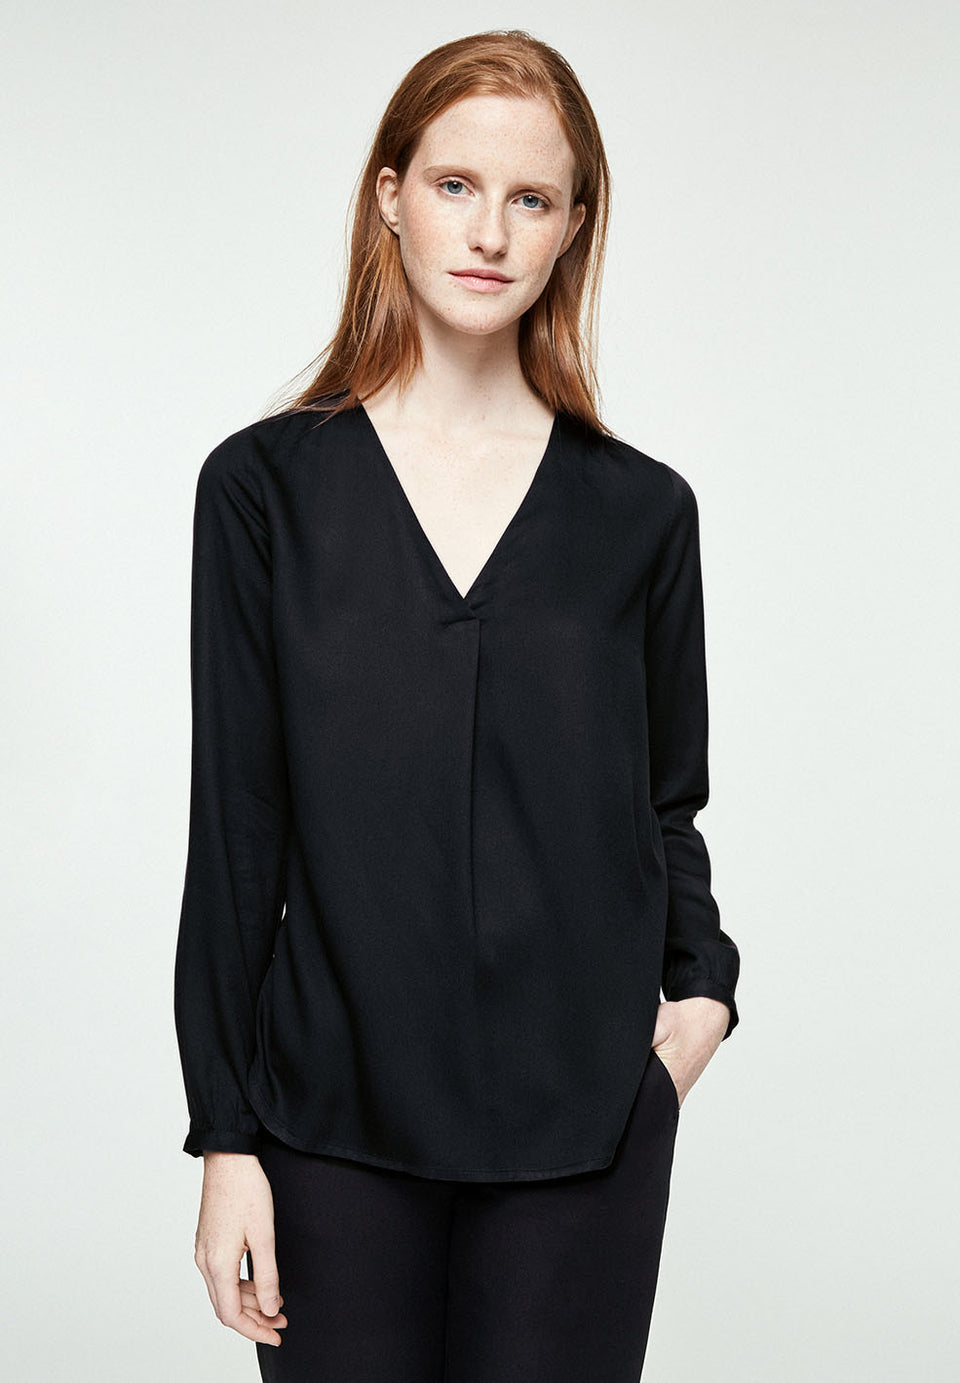 Felicitaas Blouse in Black